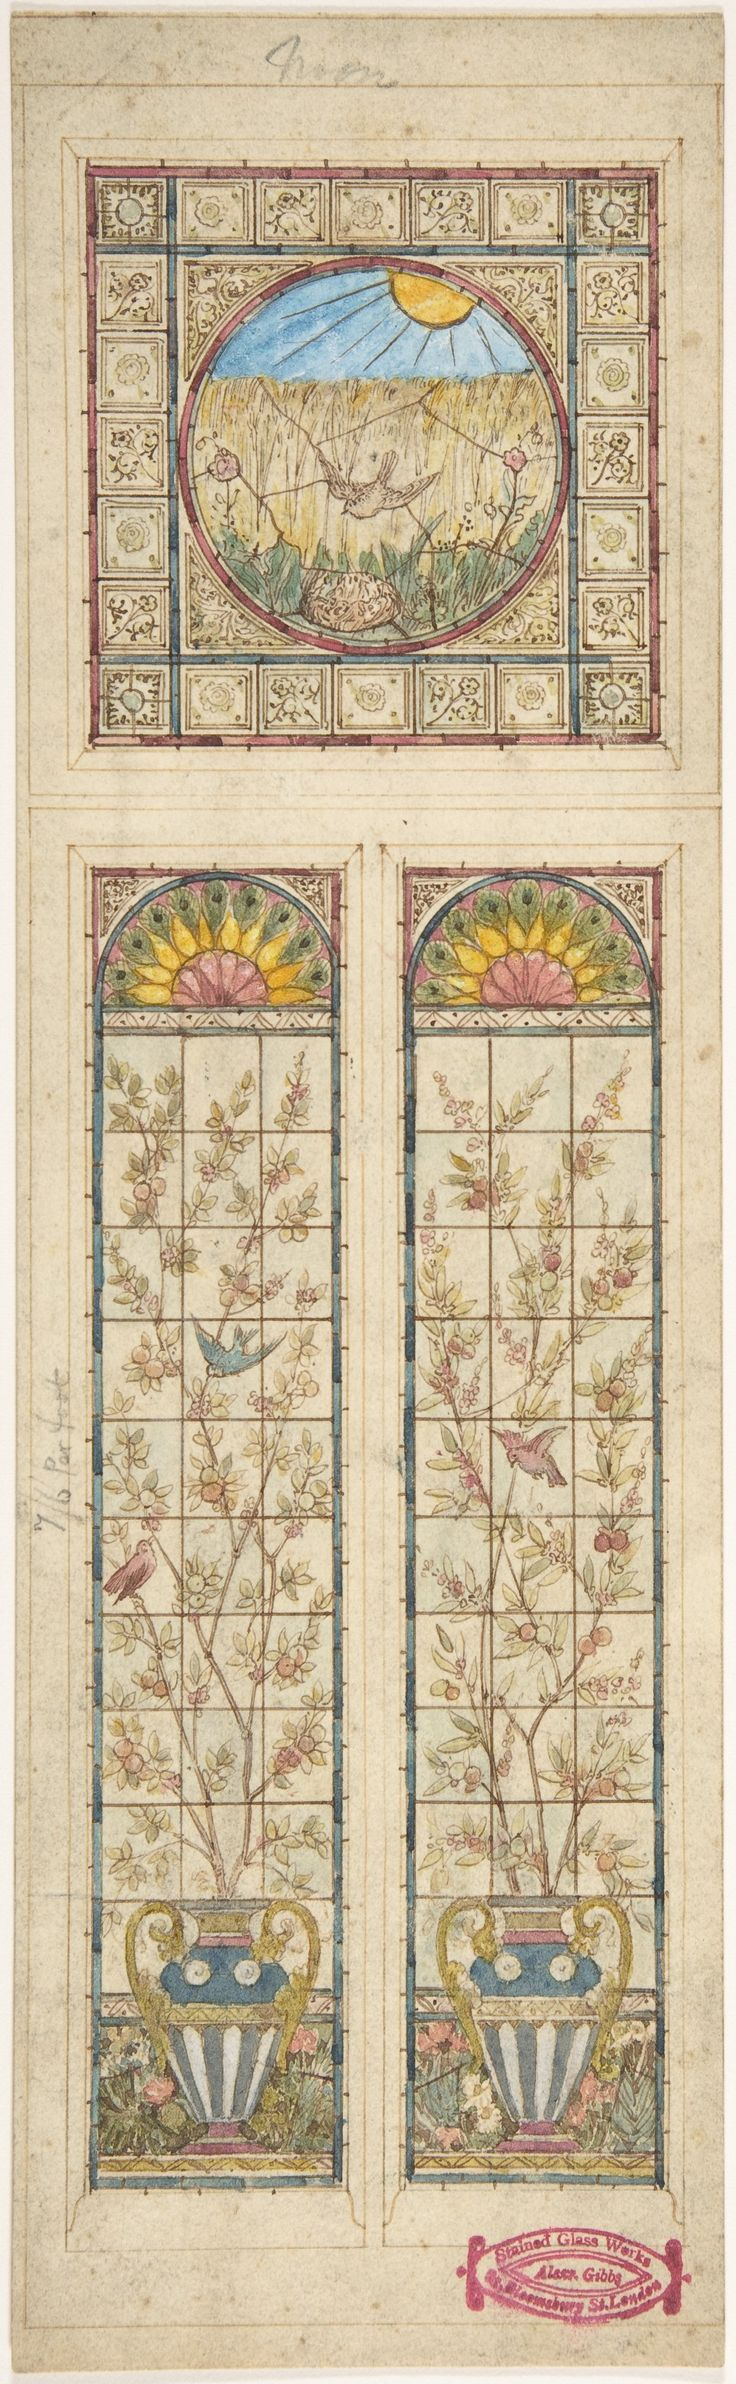 Alexander Gibbs | Design for a stained glass window | The Met